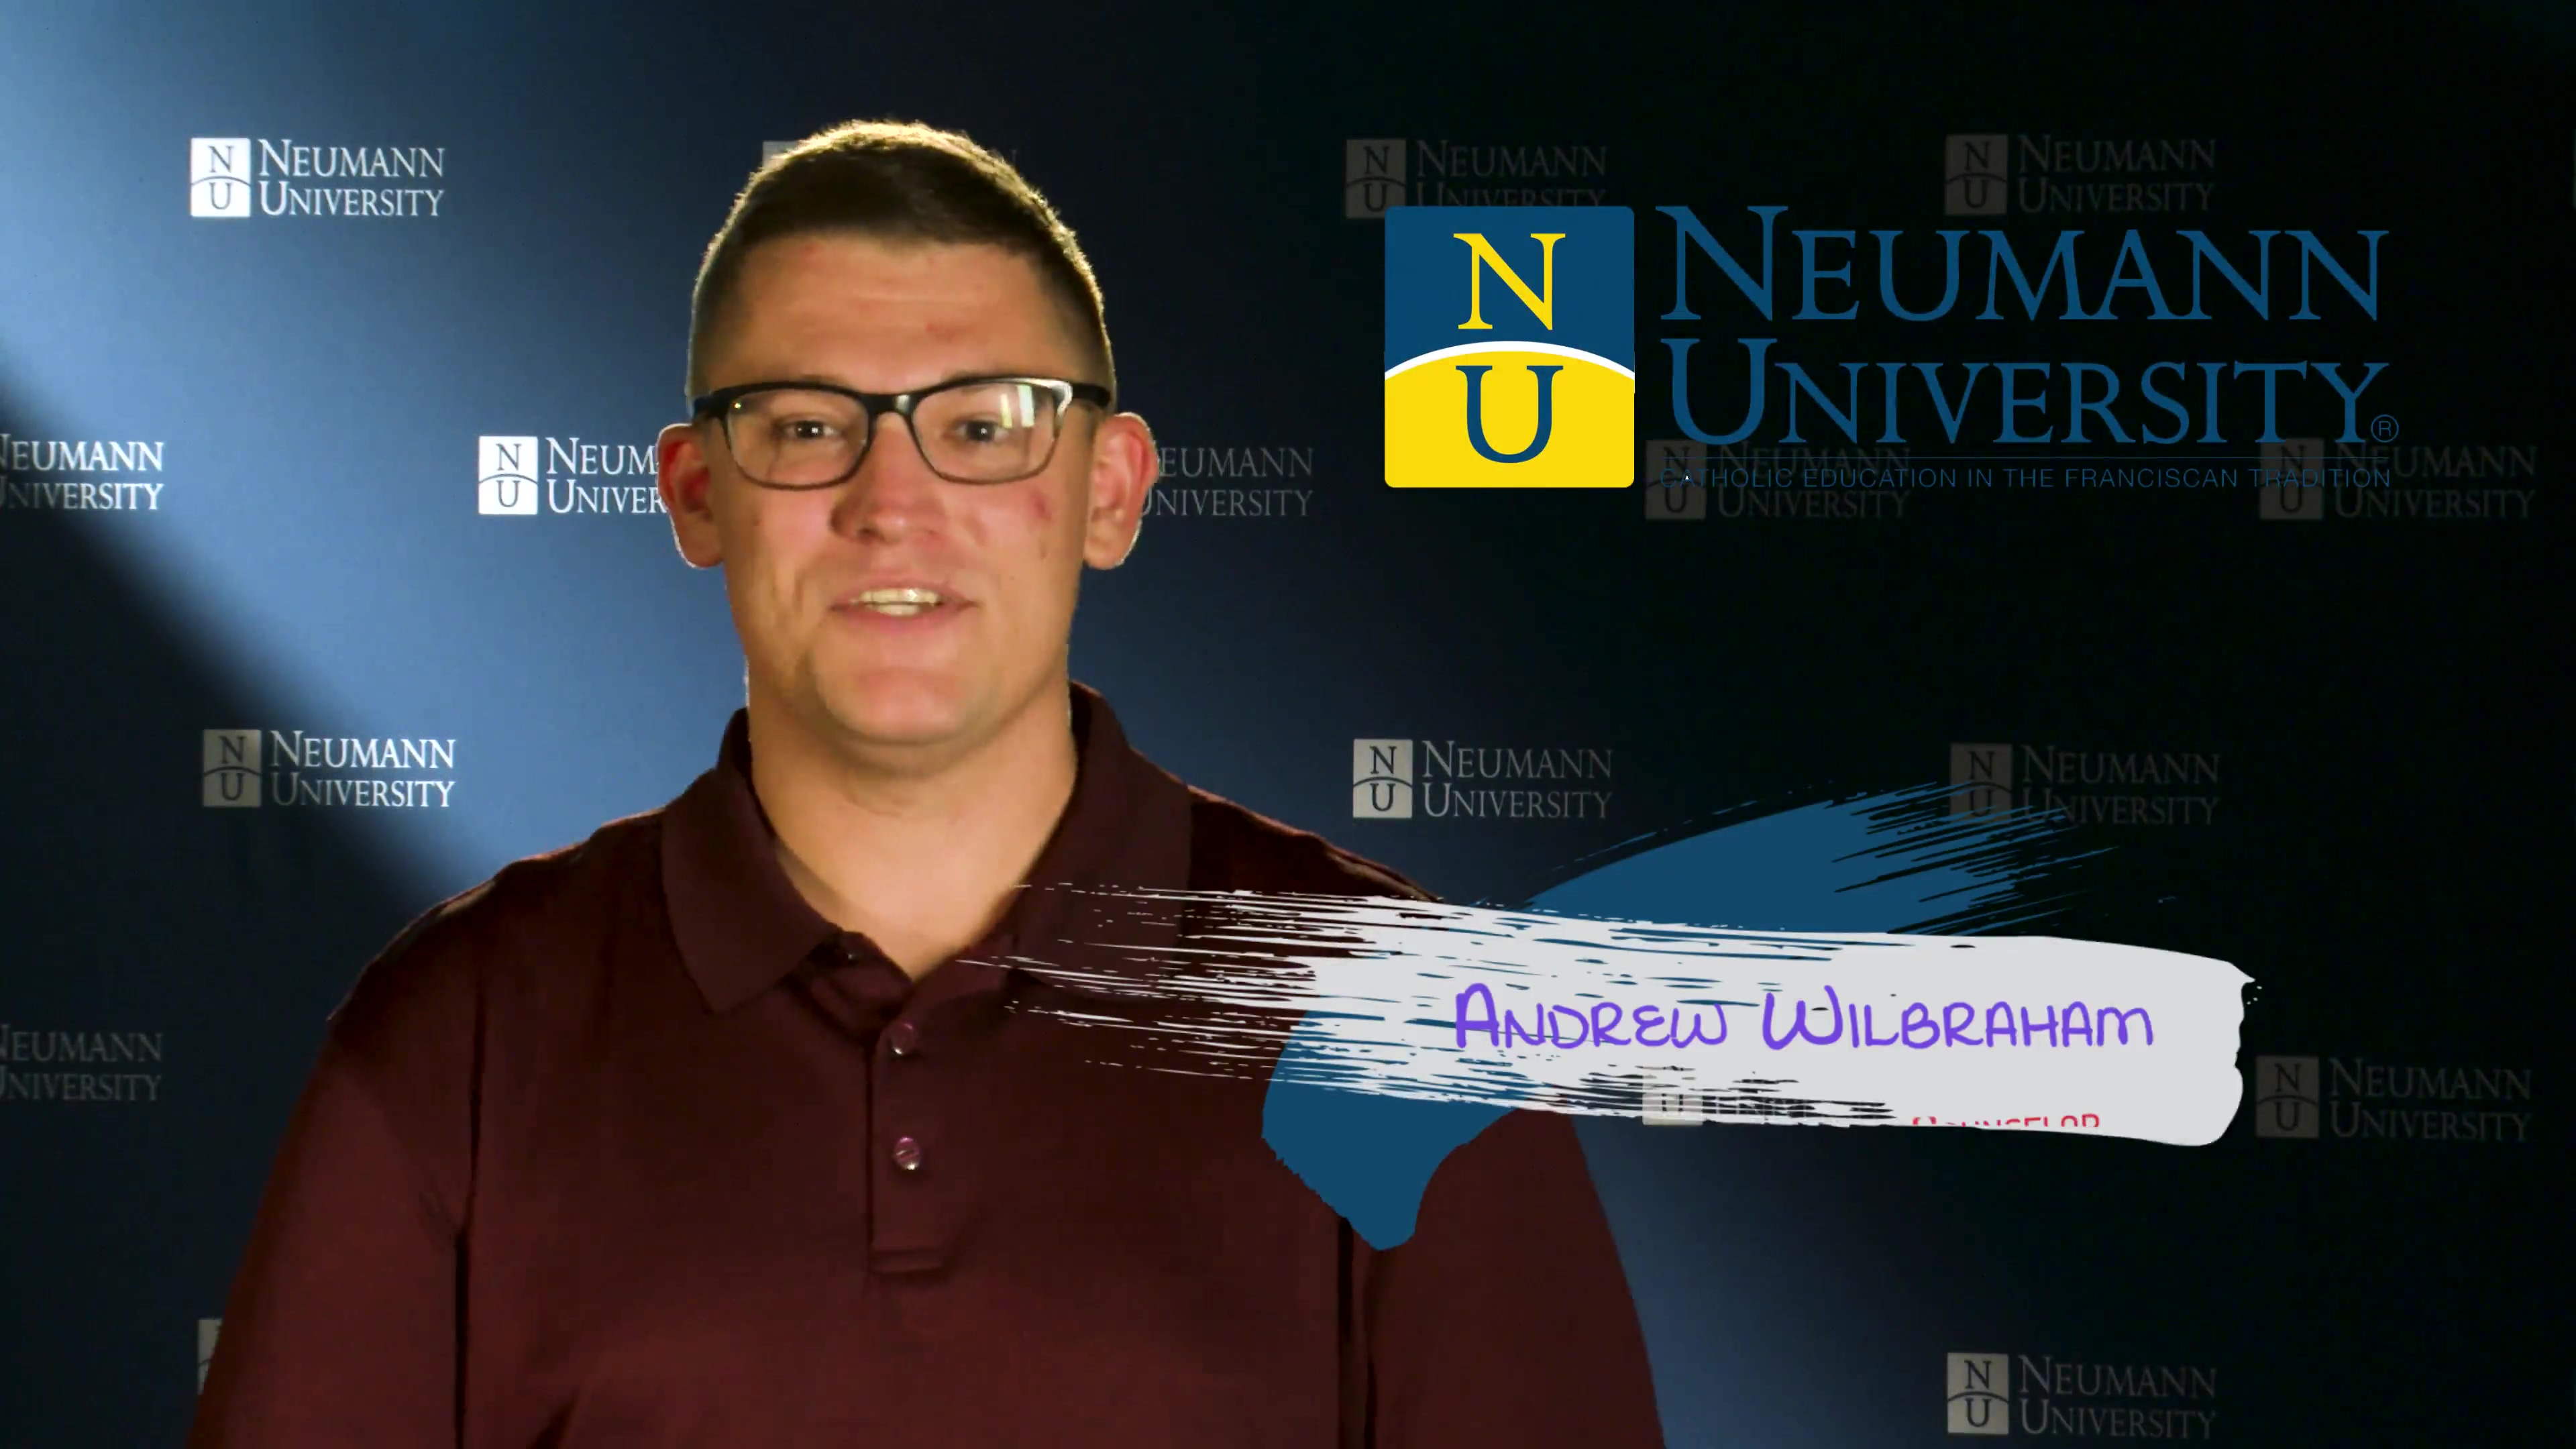 Neumann University - Admissions Counselor Andrew Wilbraham